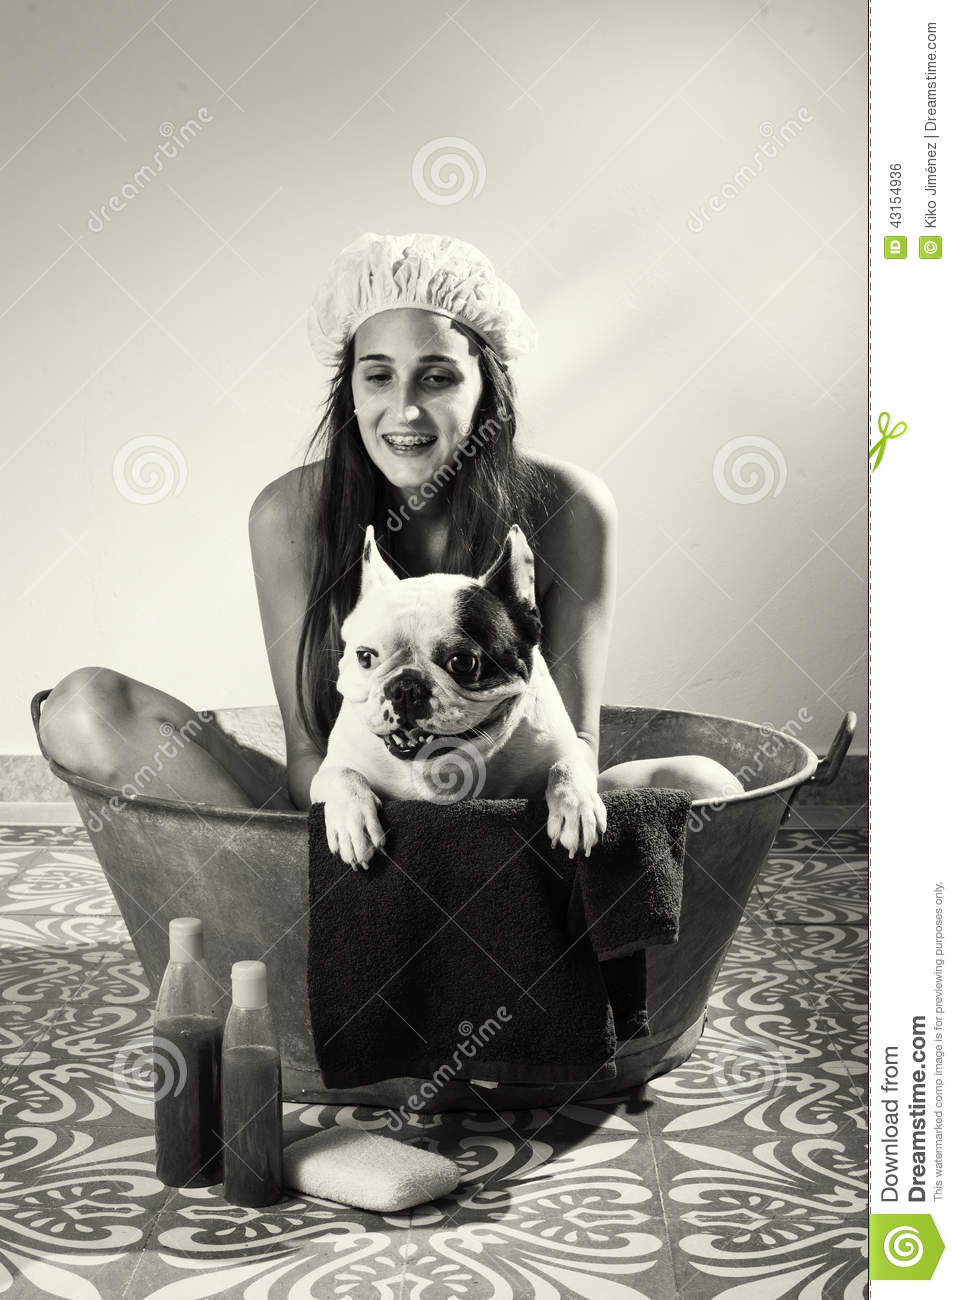 Woman Bathing A Dog In Black And White Stock Photo - Image ...